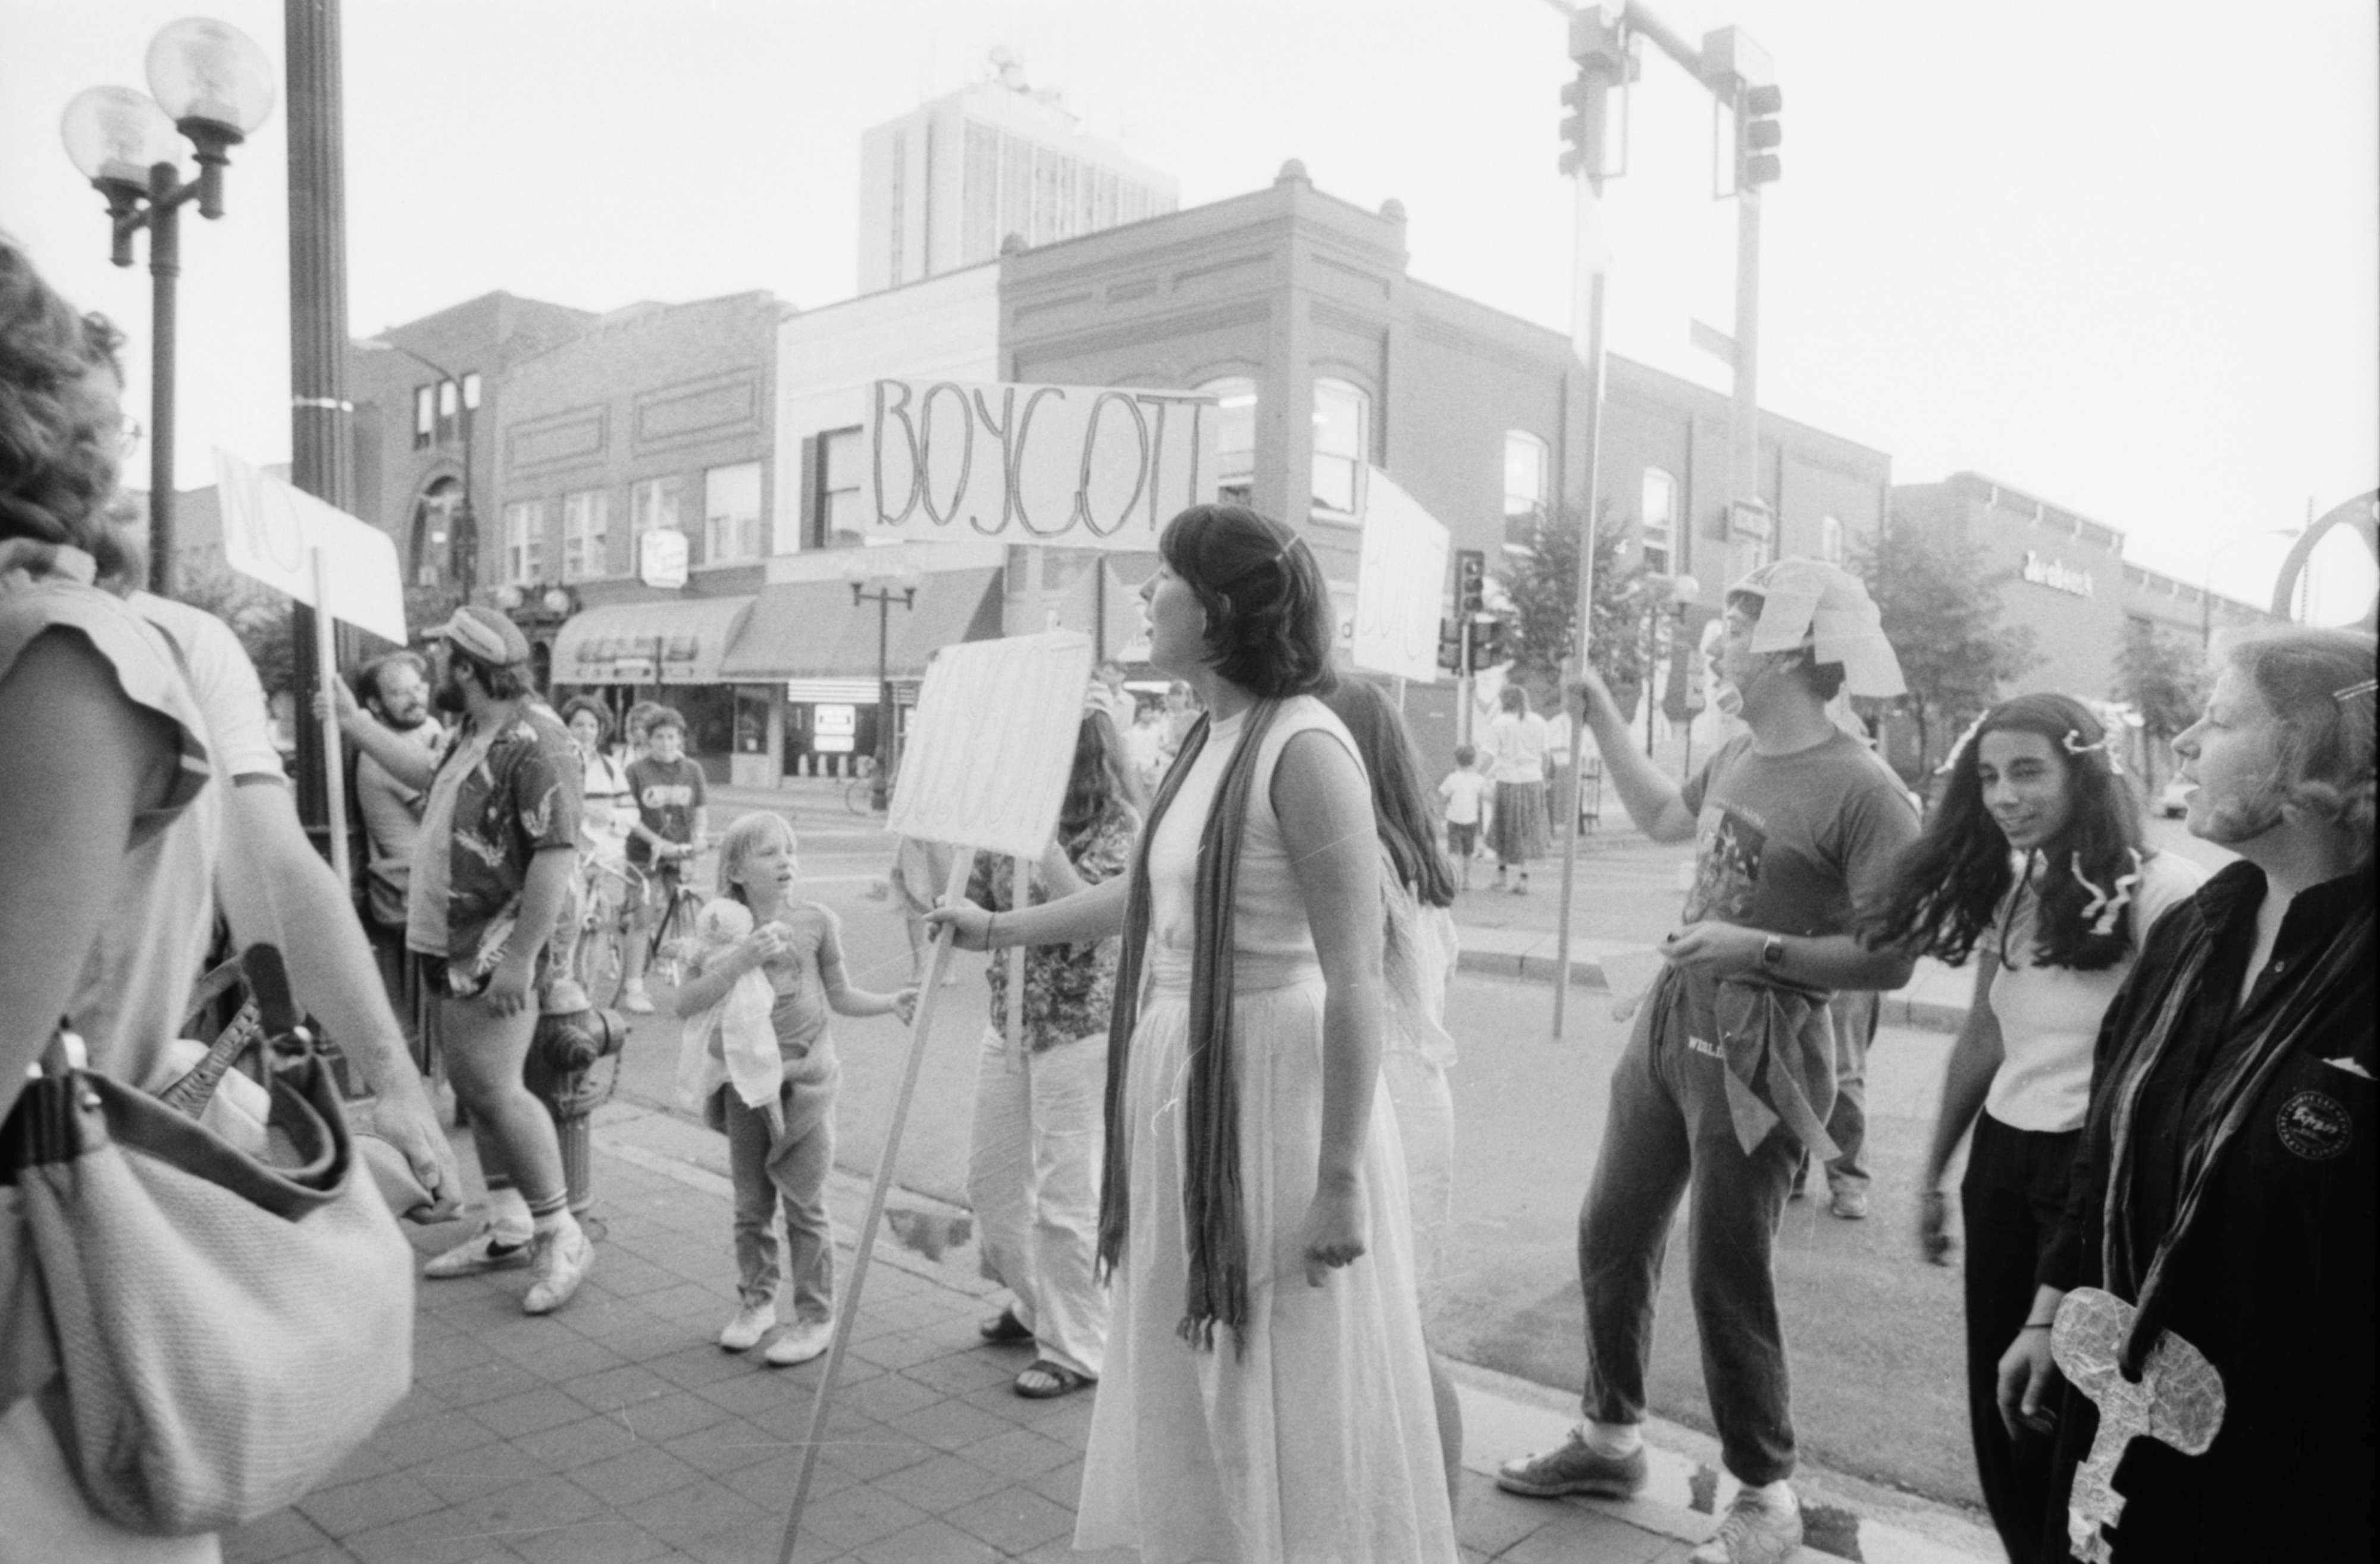 Gay Rights Rally Outside Michigan Theater, June 1985 image